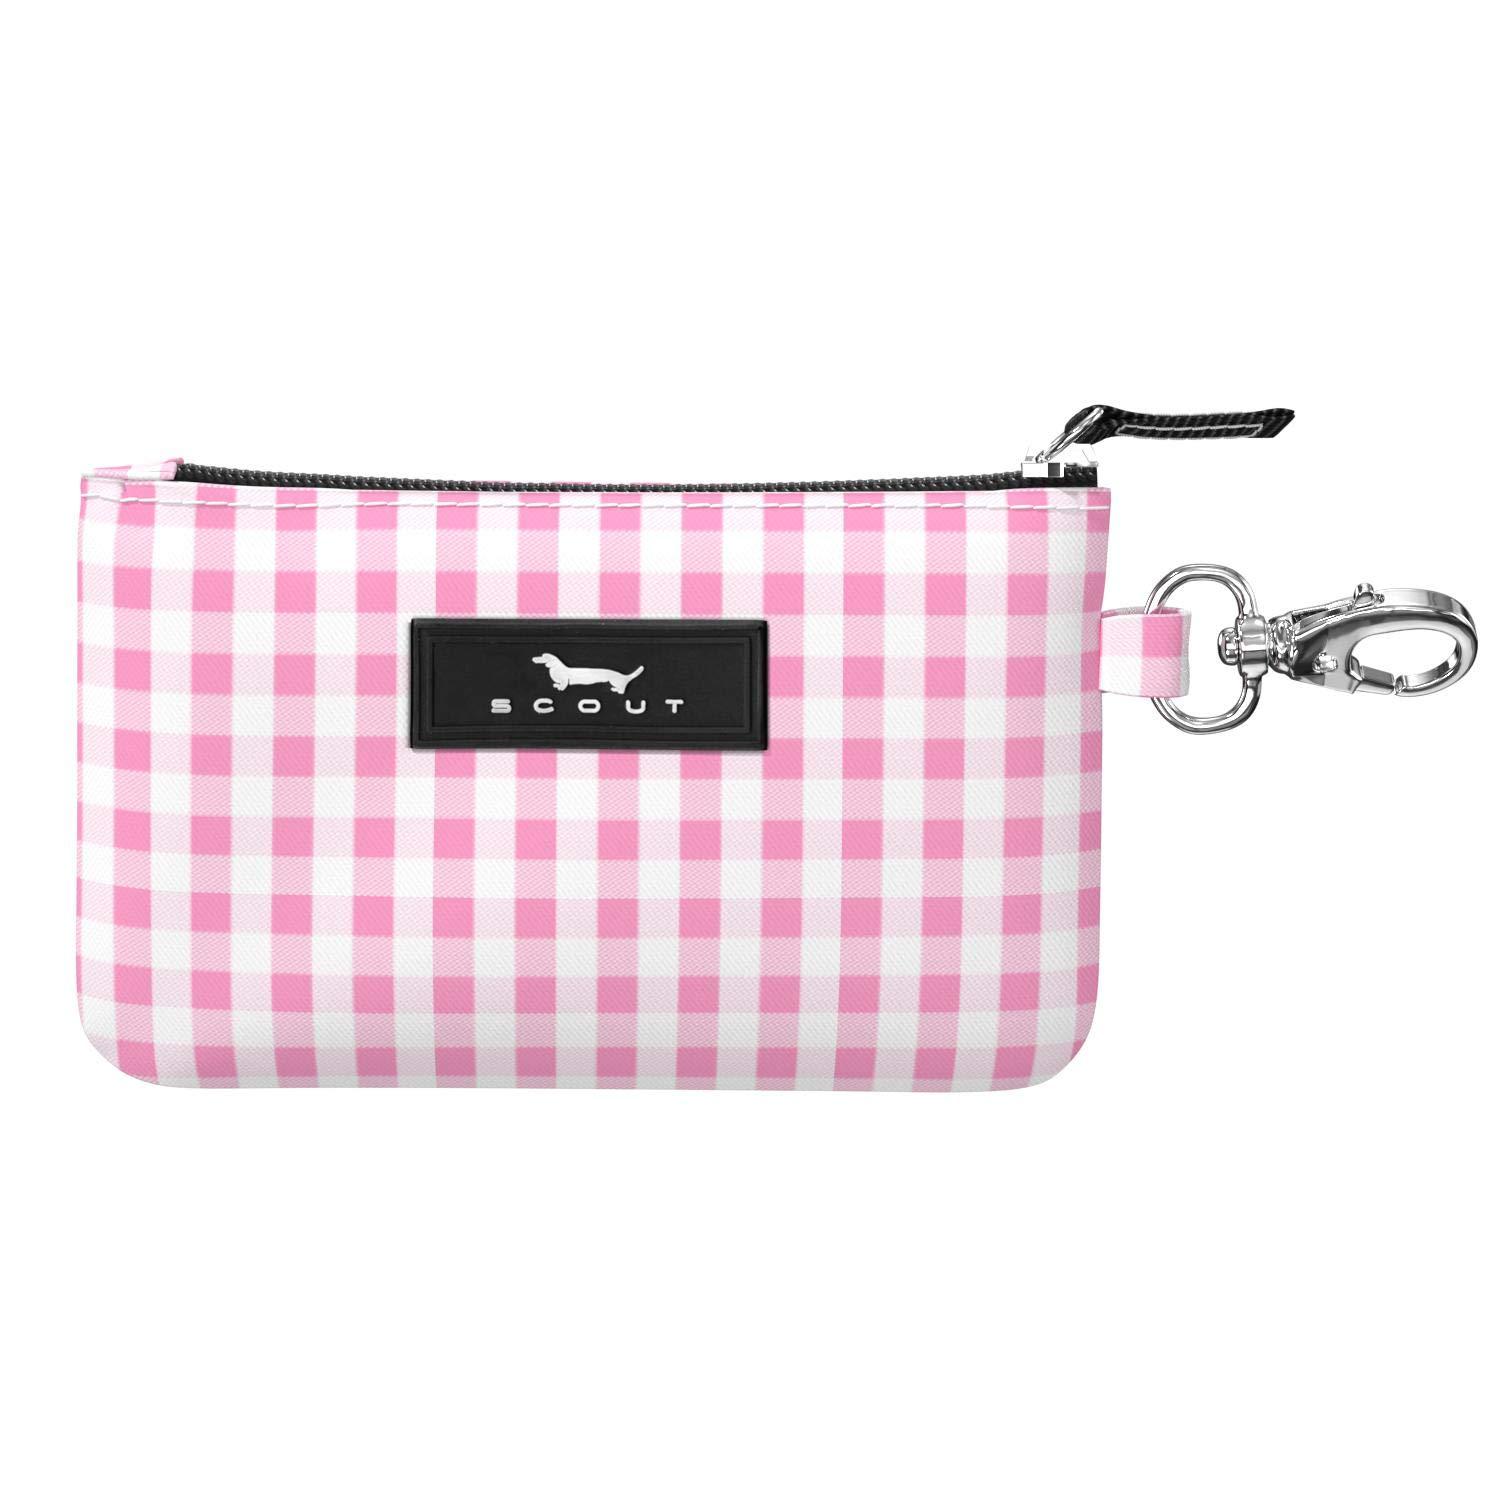 Small Card and ID Case for Women Mini Keychain Wallet with Zipper Closure Multiple Patterns Available SCOUT IDKase Card Holder